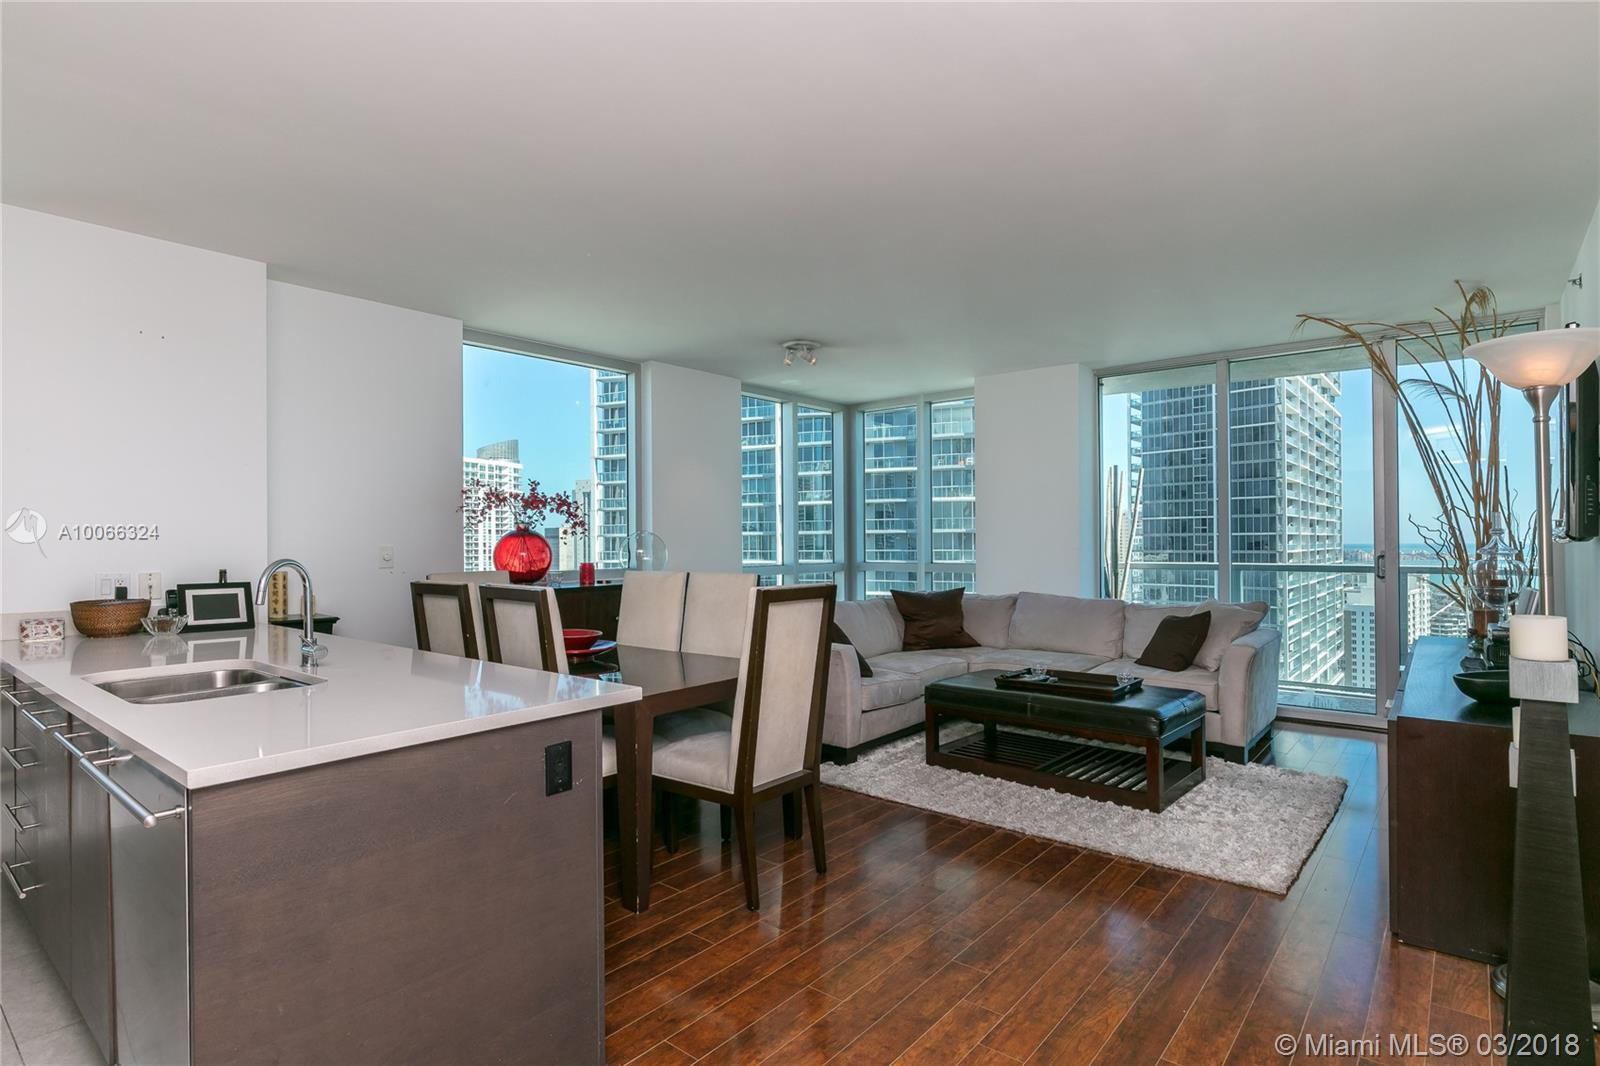 500 Brickell Avenue and 55 SE 6 Street, Miami, FL 33131, 500 Brickell #3301, Brickell, Miami A10066324 image #25